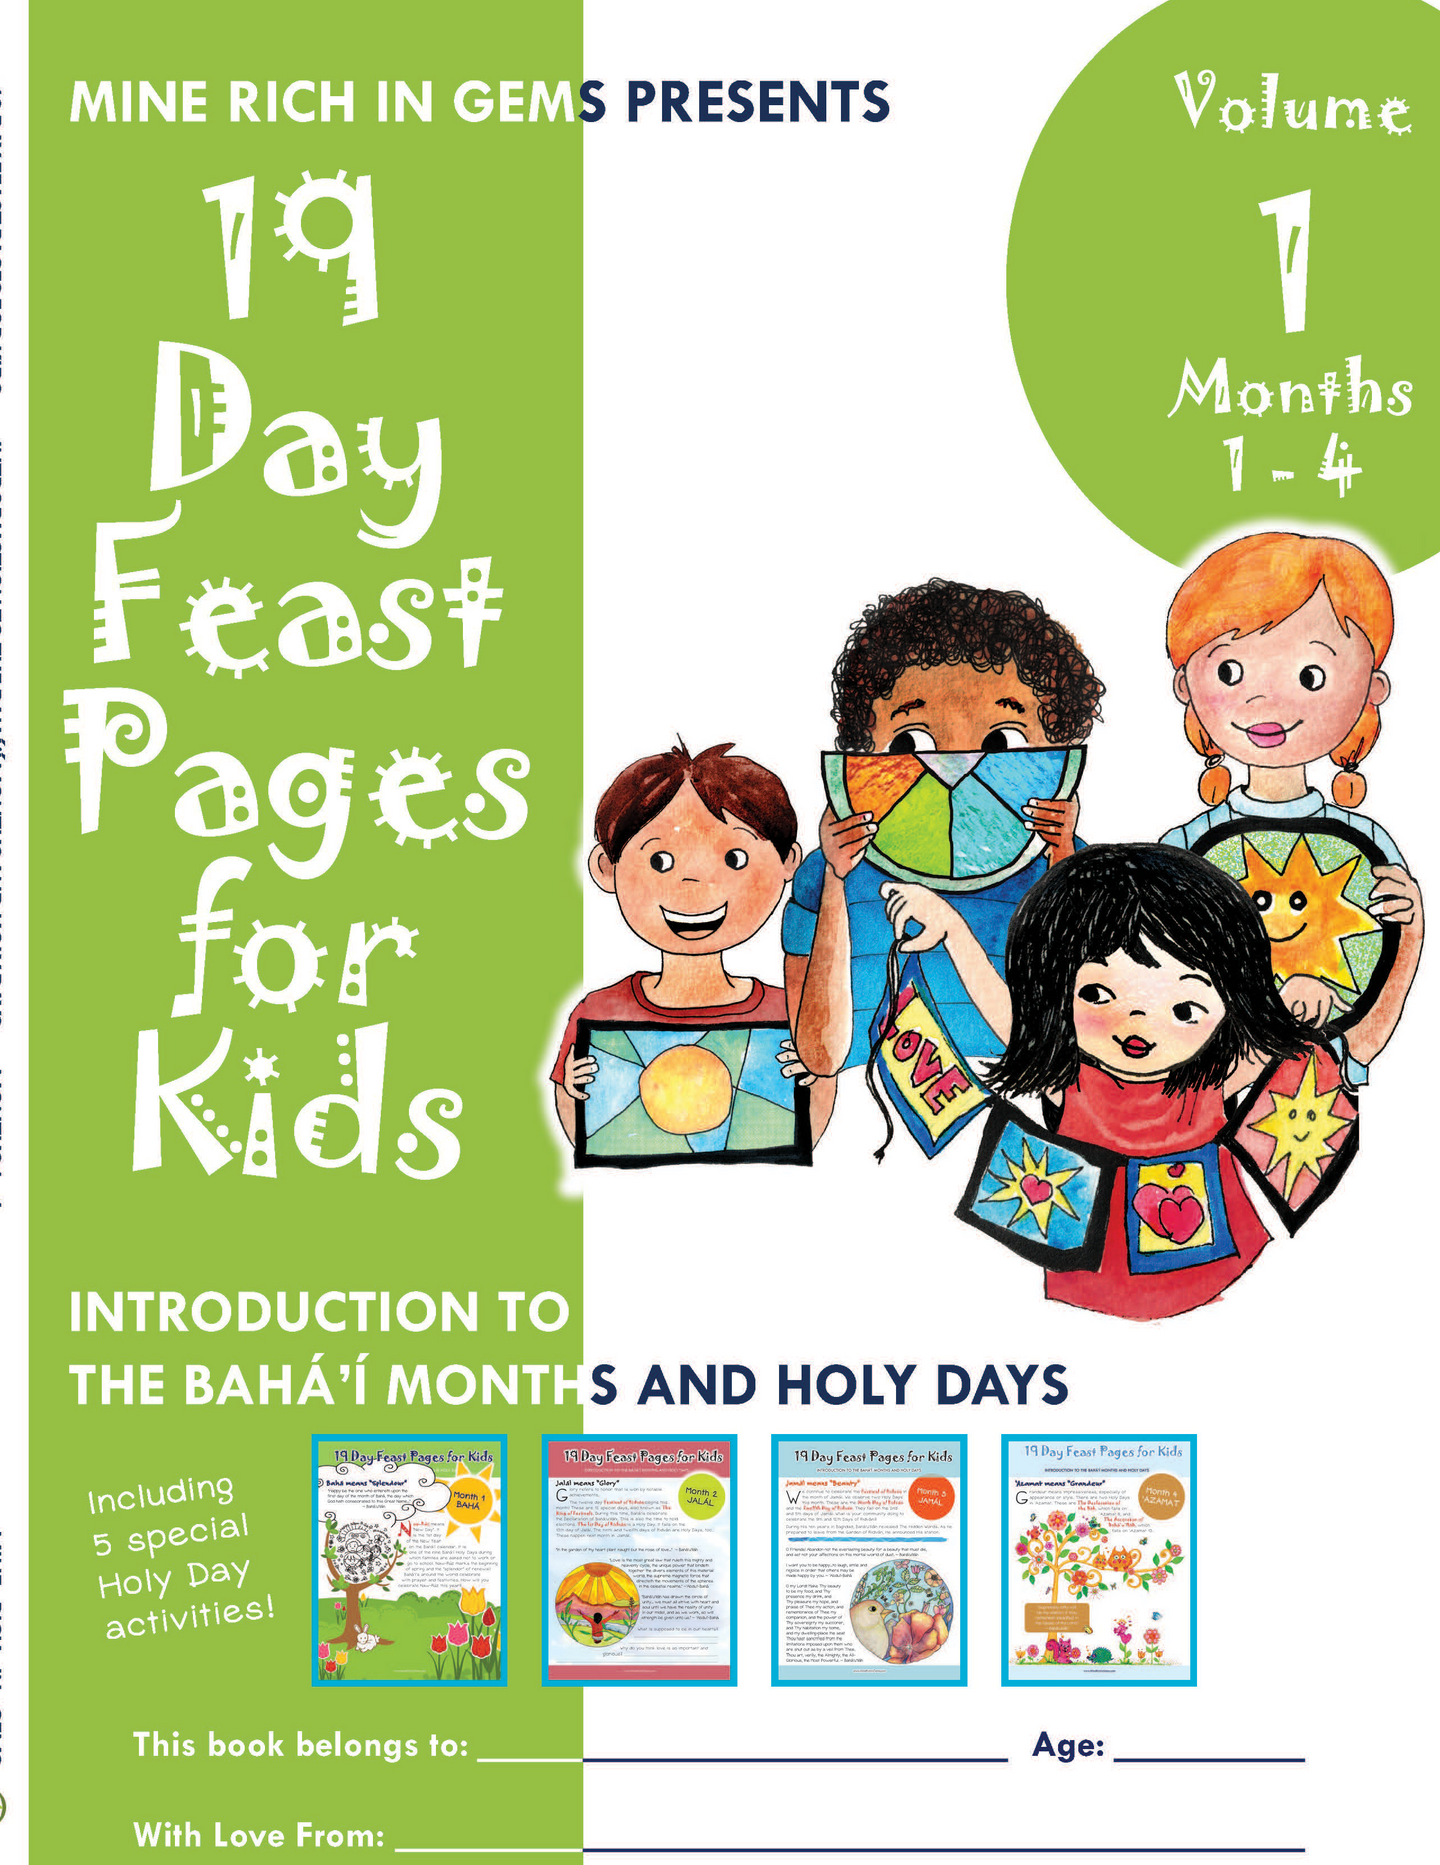 Printed Bundles | 19 Day Feast Pages for Kids: Introduction to the Bahá'í Months and Holy Days | Months 1-4